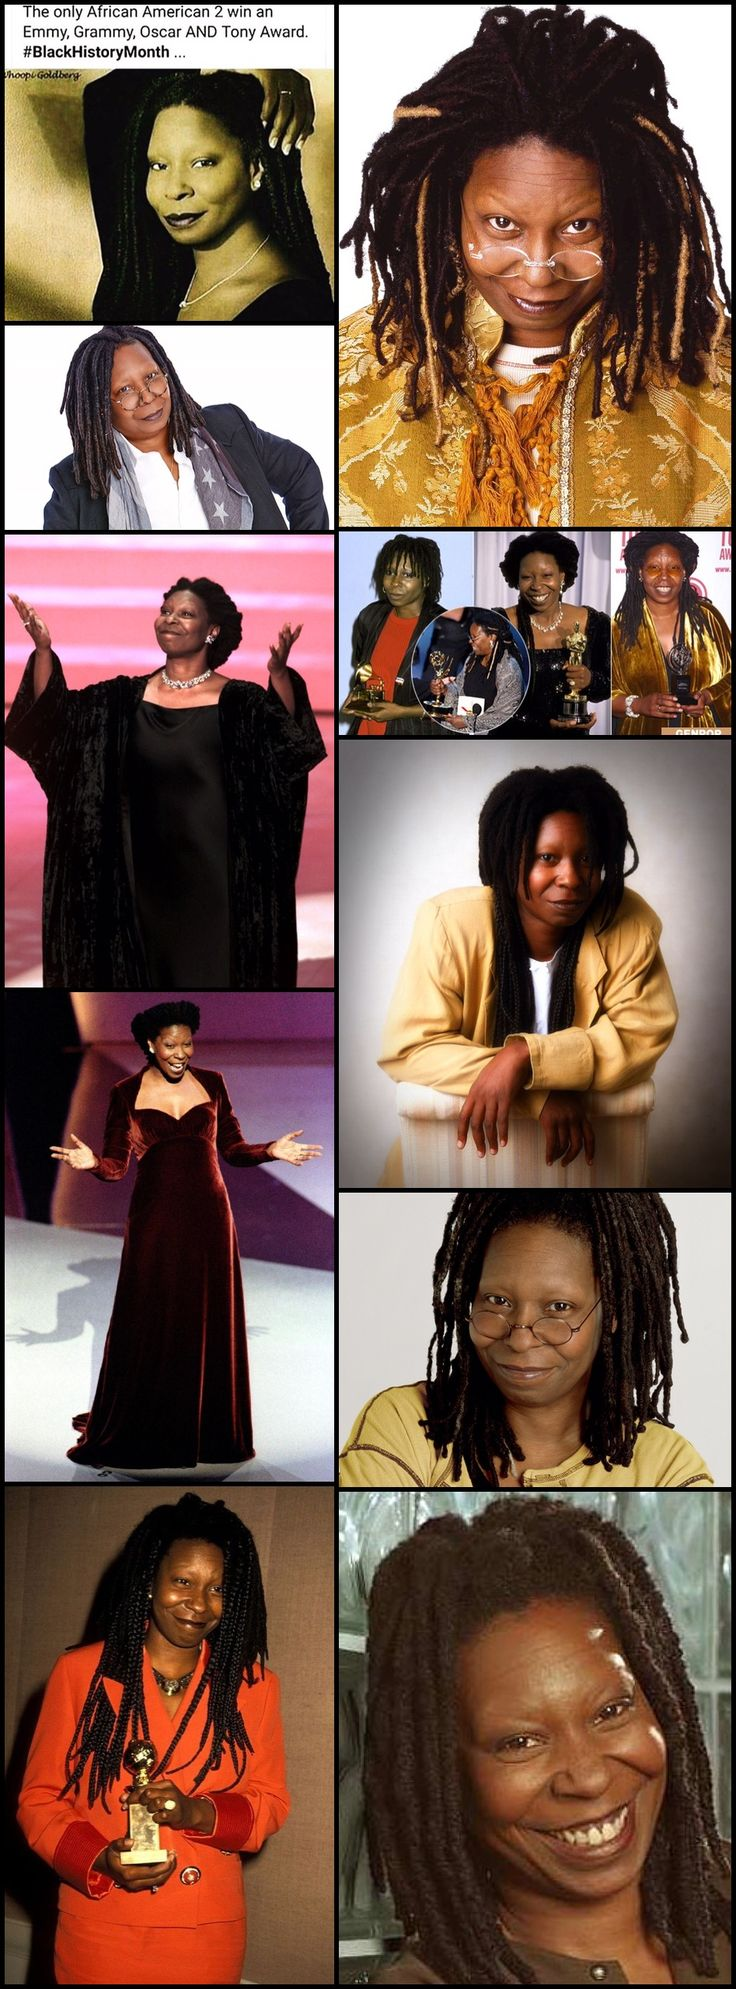 """Whoopi Goldberg (born 1955), is the first and only African American to receive Emmy, Grammy, Oscar, and Tony (EGOT) awards. She received her fourth distinct award in 2002. Between 1985 and 2009, Goldberg received a total of 6 awards. Goldberg is the most recent EGOT """"winner"""", the first to win the Oscar as their second award, and the first to win two of their awards in the same year (she won both her first Daytime Emmy and her Tony in 2002)."""